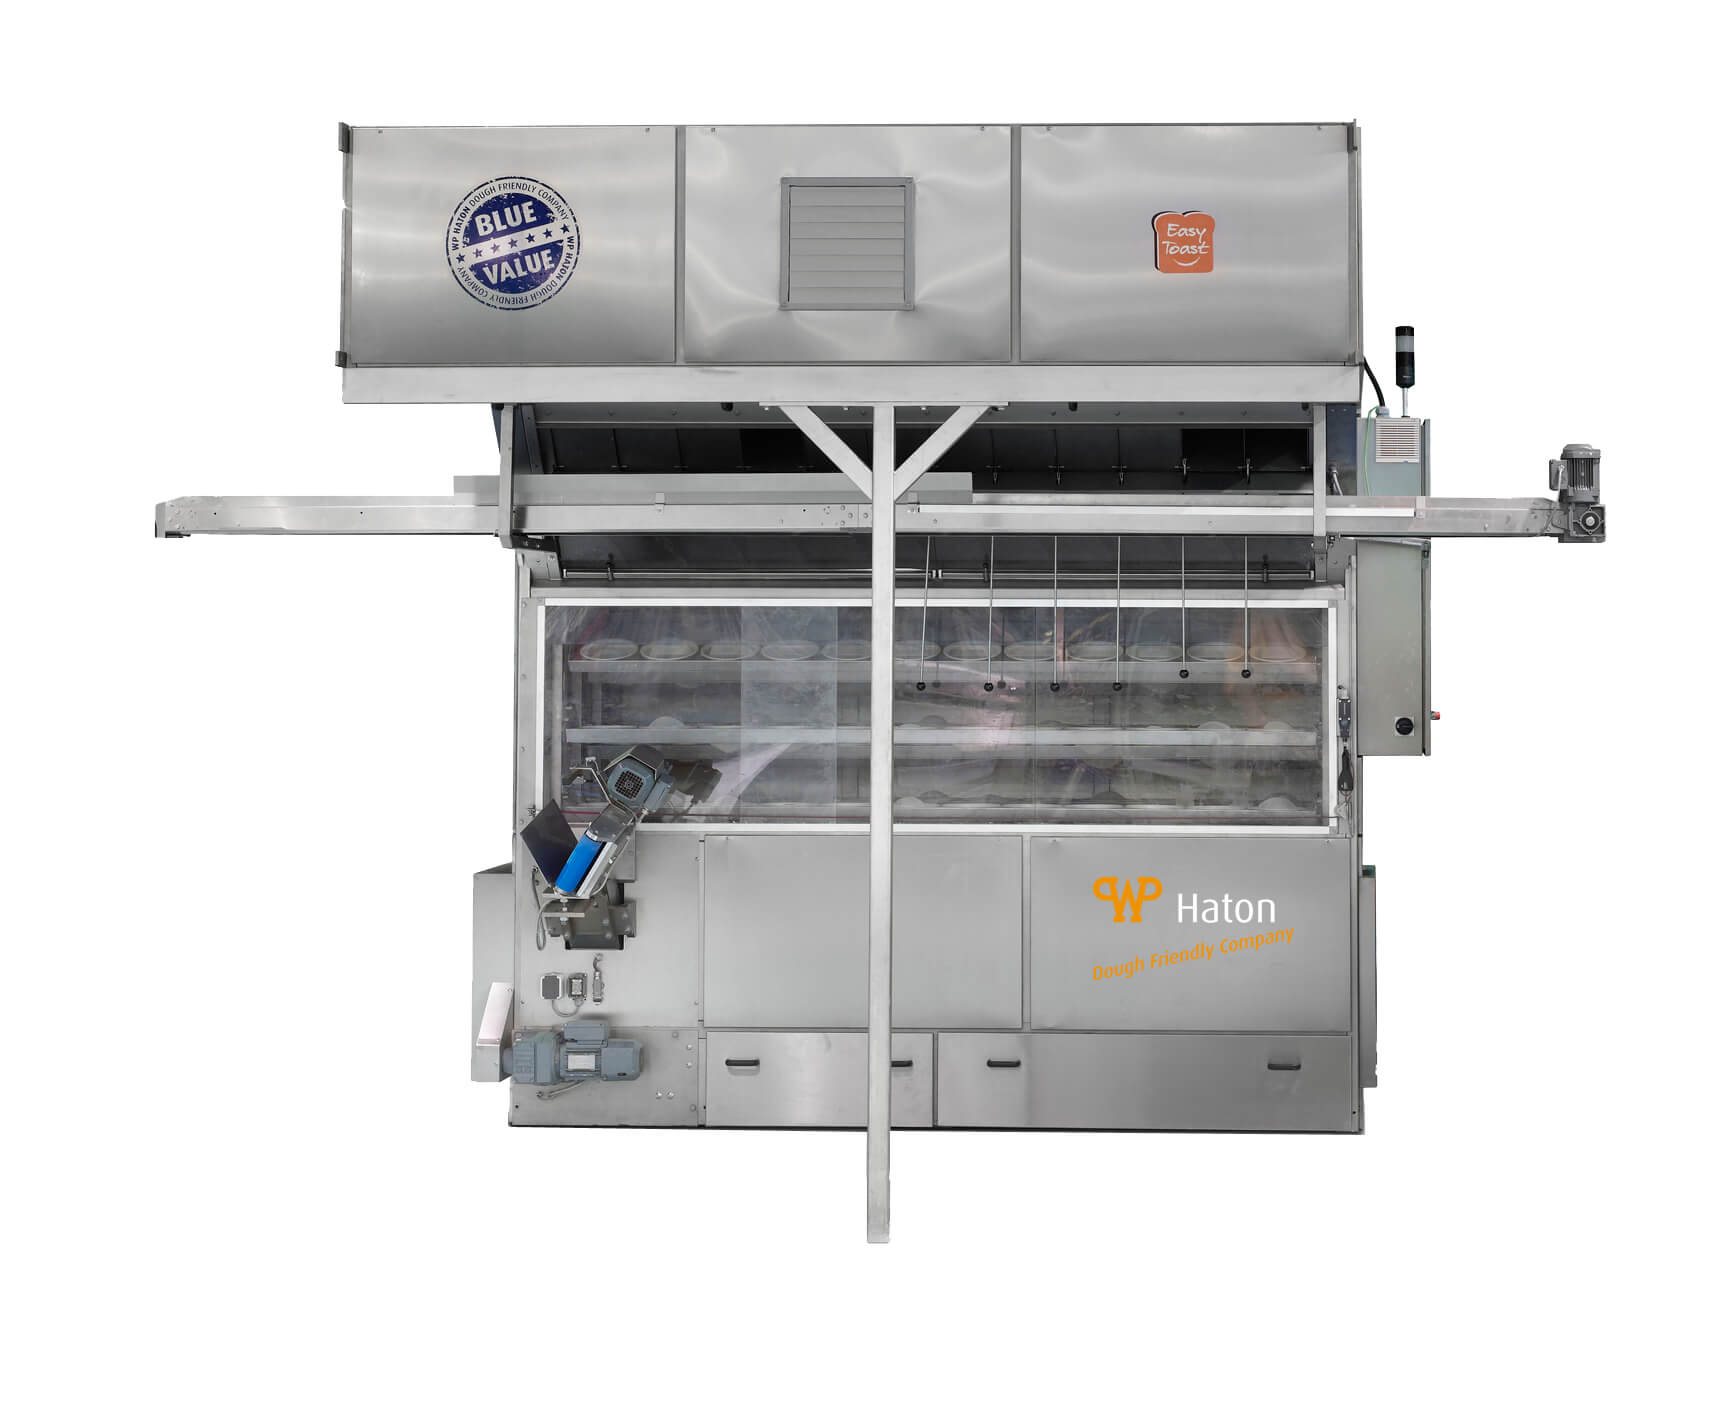 bread systems gemini bakery equipment company